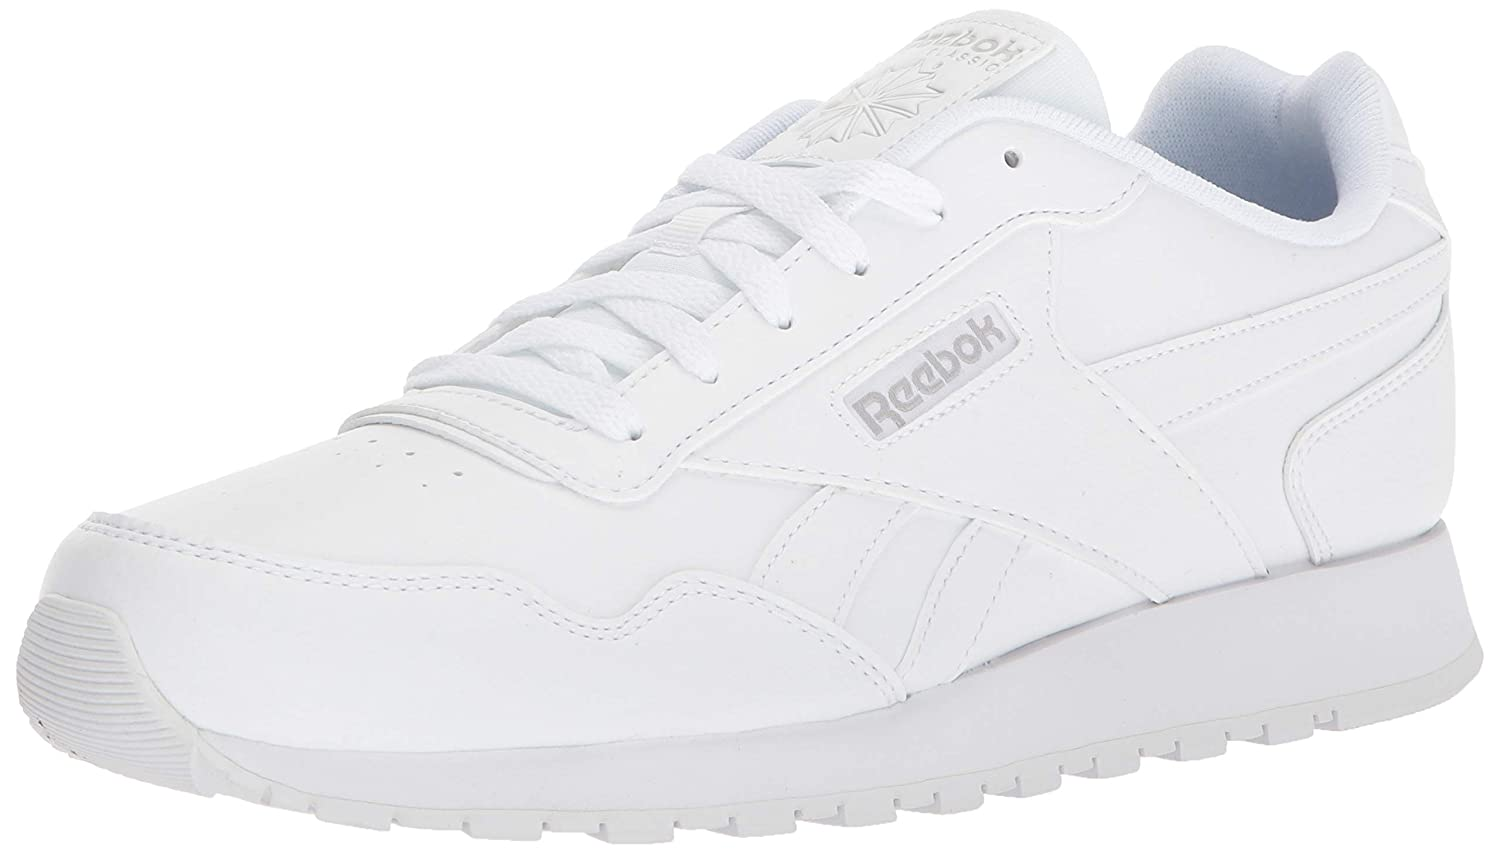 d3b347c02cc8 Reebok Men s Classic Harman Run Sneaker  Buy Online at Low Prices in India  - Amazon.in